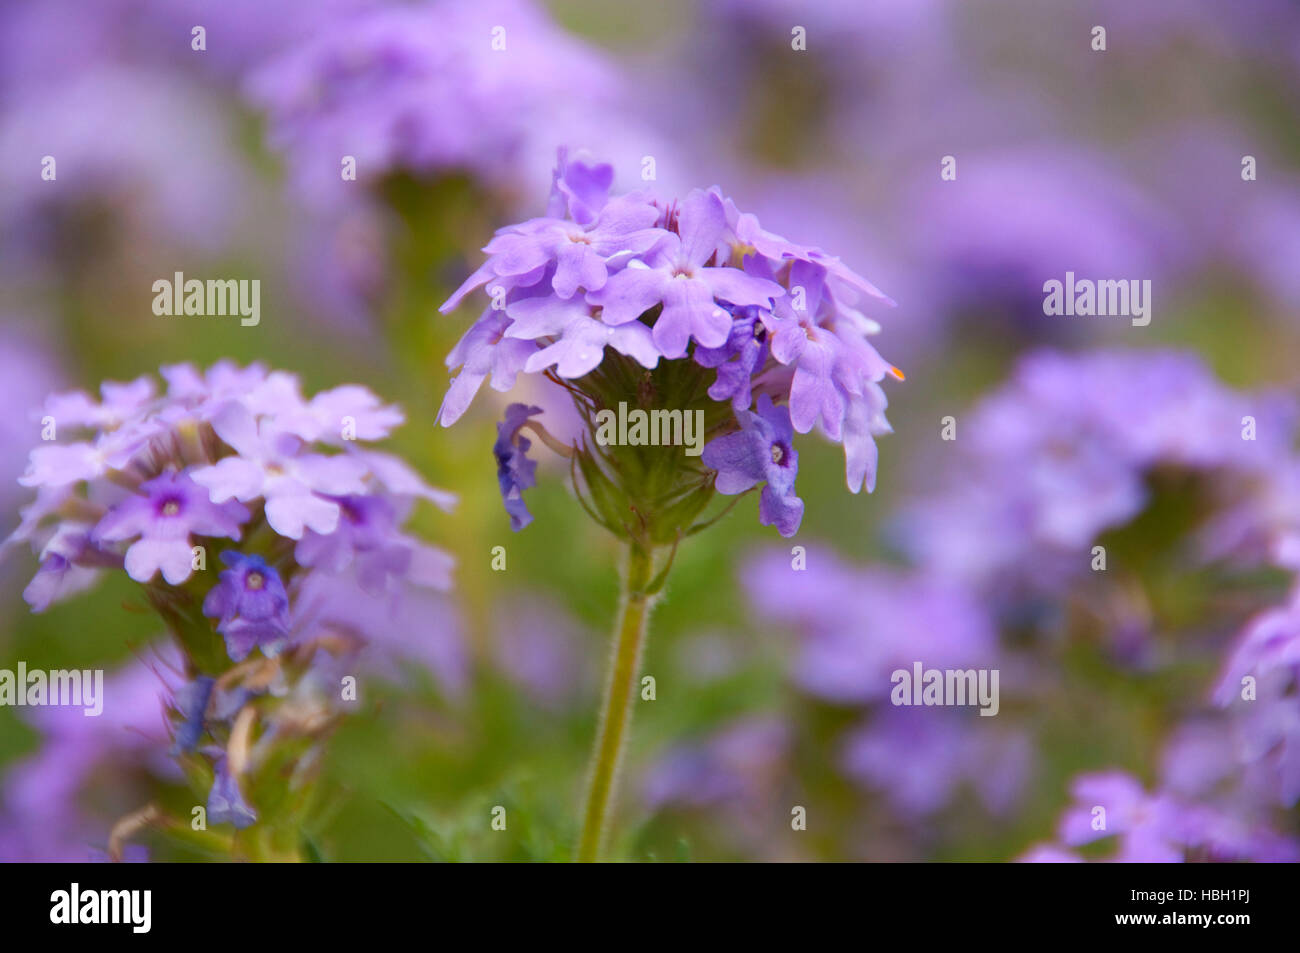 Verbena, South Llano River State Park, Texas - Stock Image